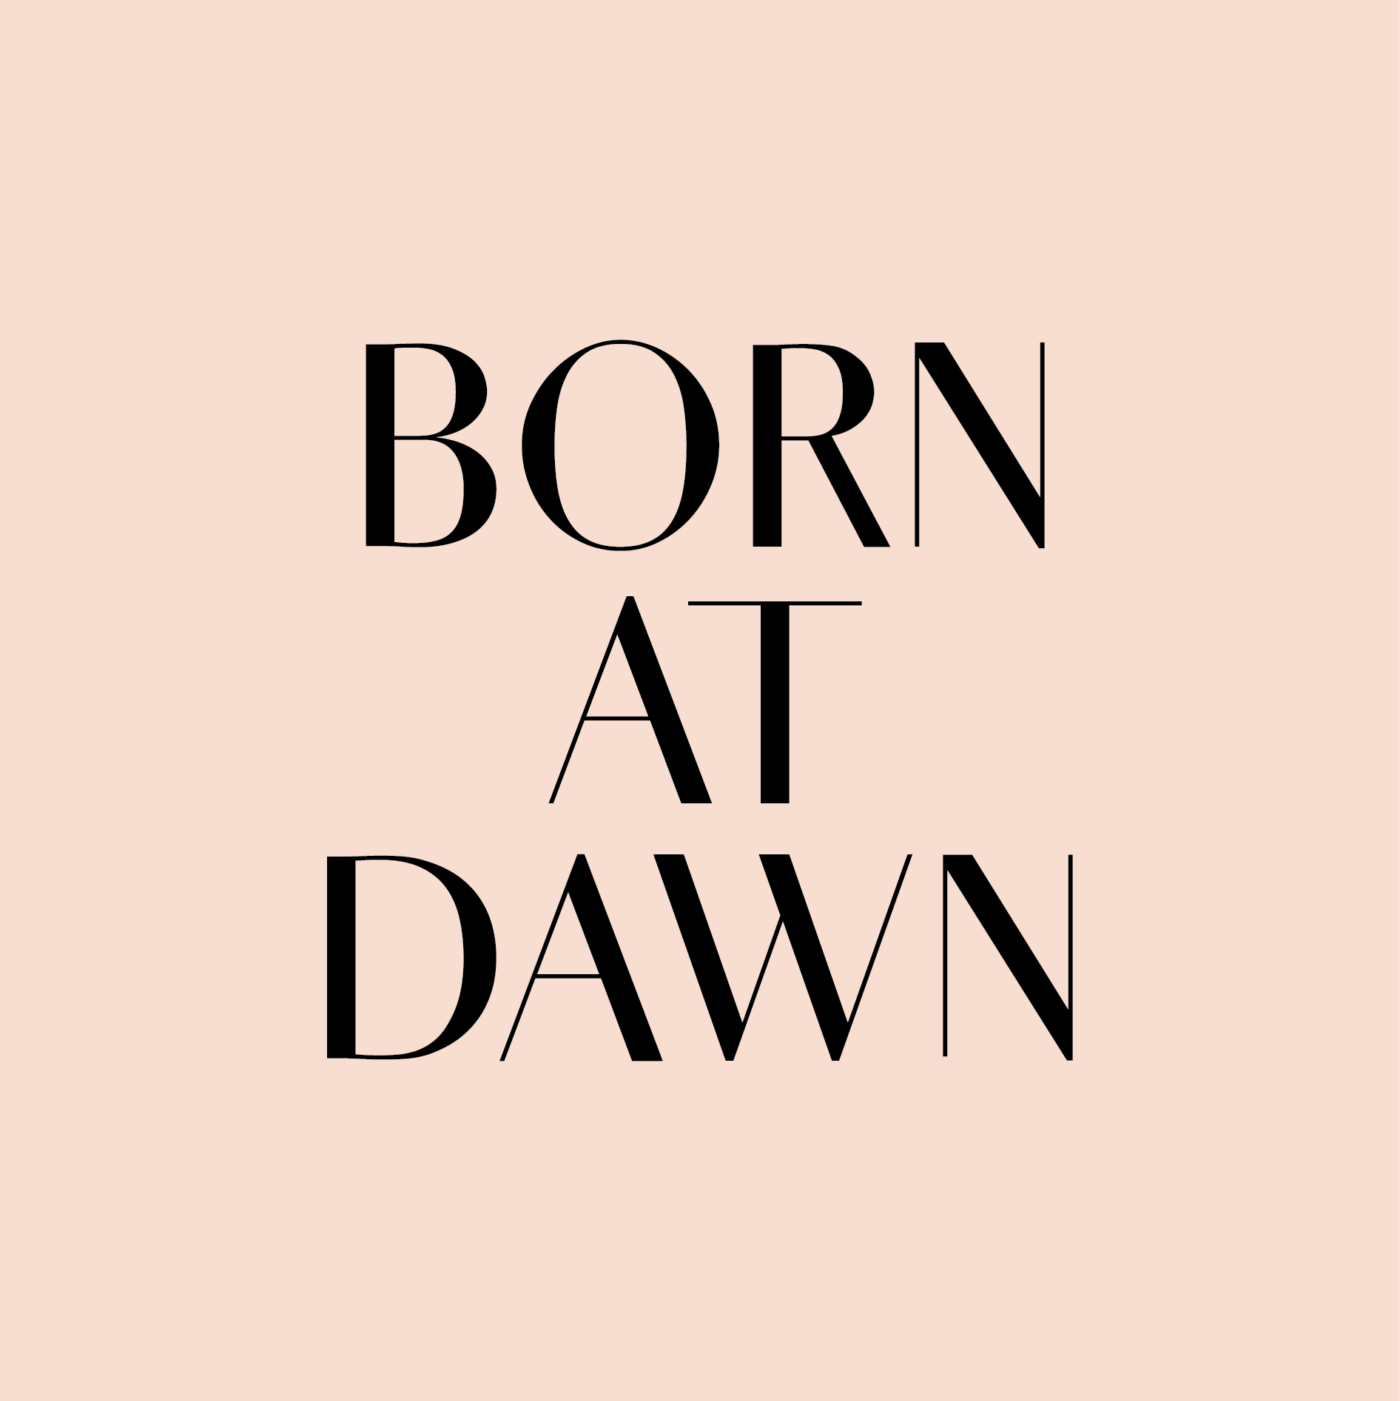 born-at-dawn-logotype-stacked-rgb-black-on-pink